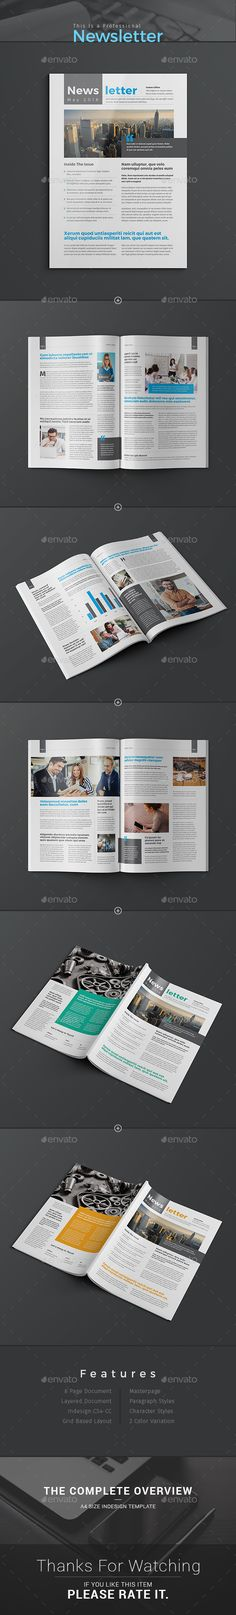 Newsletter Template - Newsletters Print Templates Download here : https://graphicriver.net/item/newsletter-template/15418299?s_rank=119&ref=Al-fatih